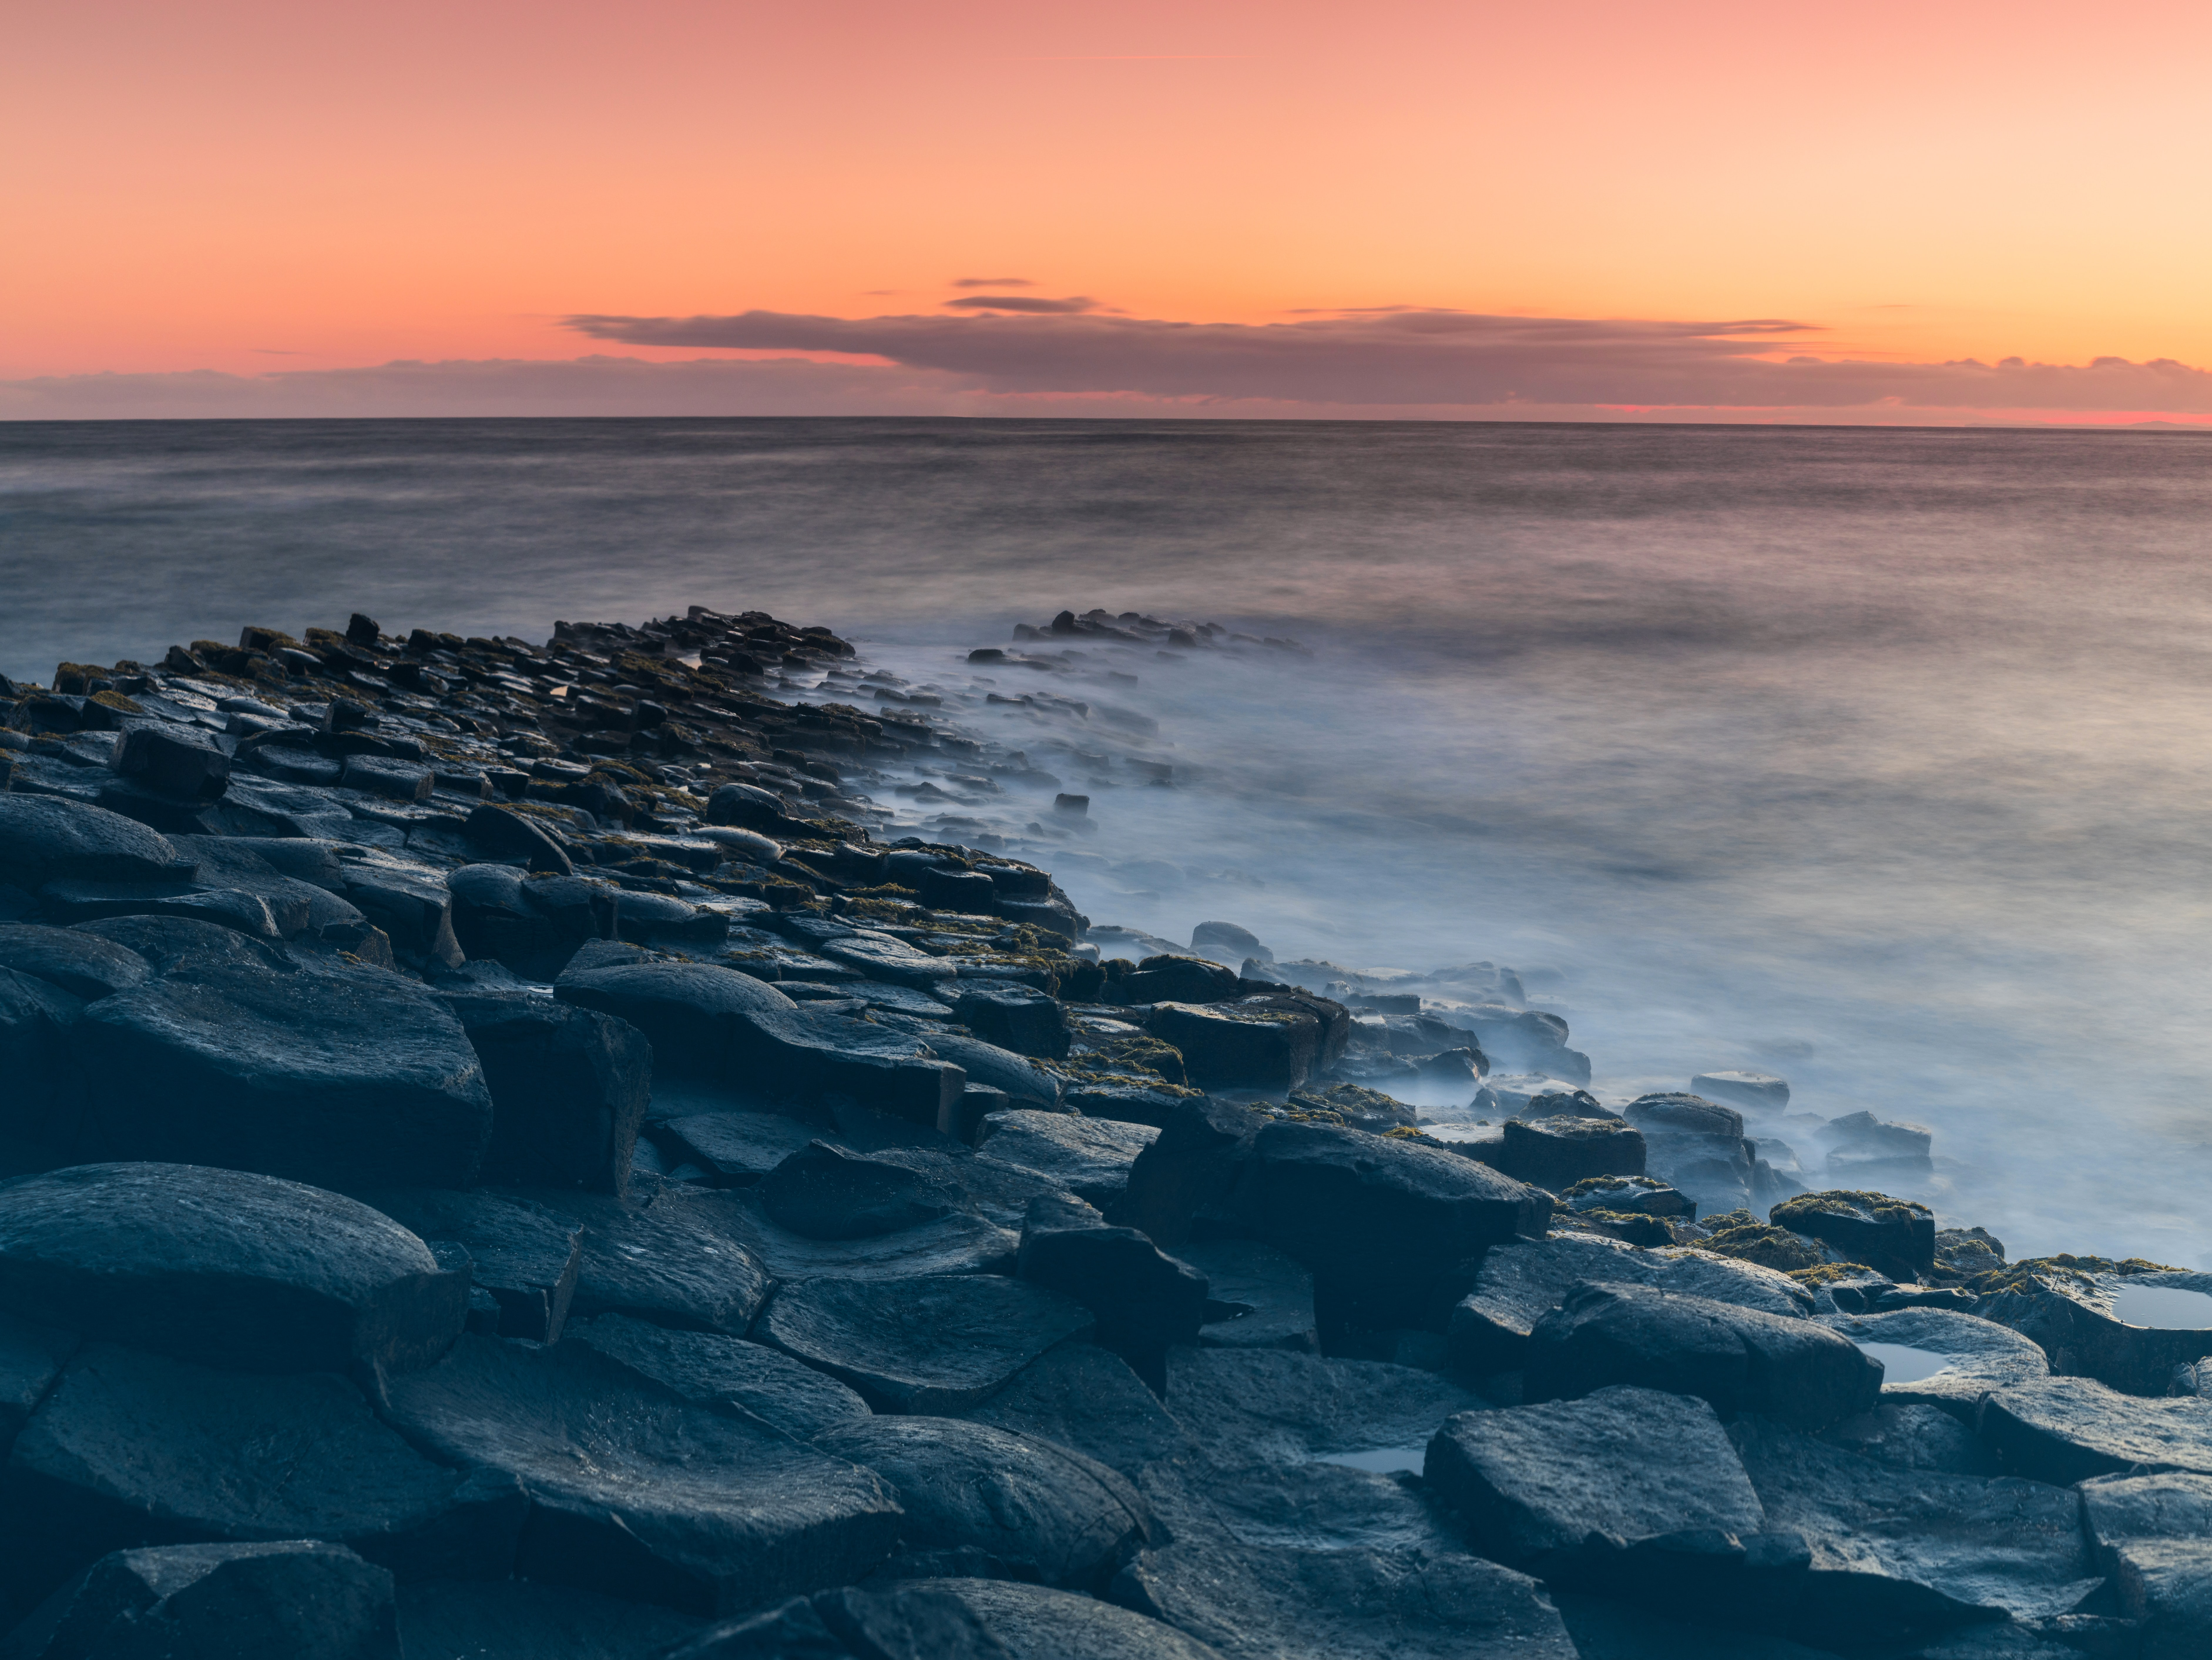 The Giant's causeway with a misty sea breaking on the rocks and a pink sky illuminating the horizon during dawn-or-dusk